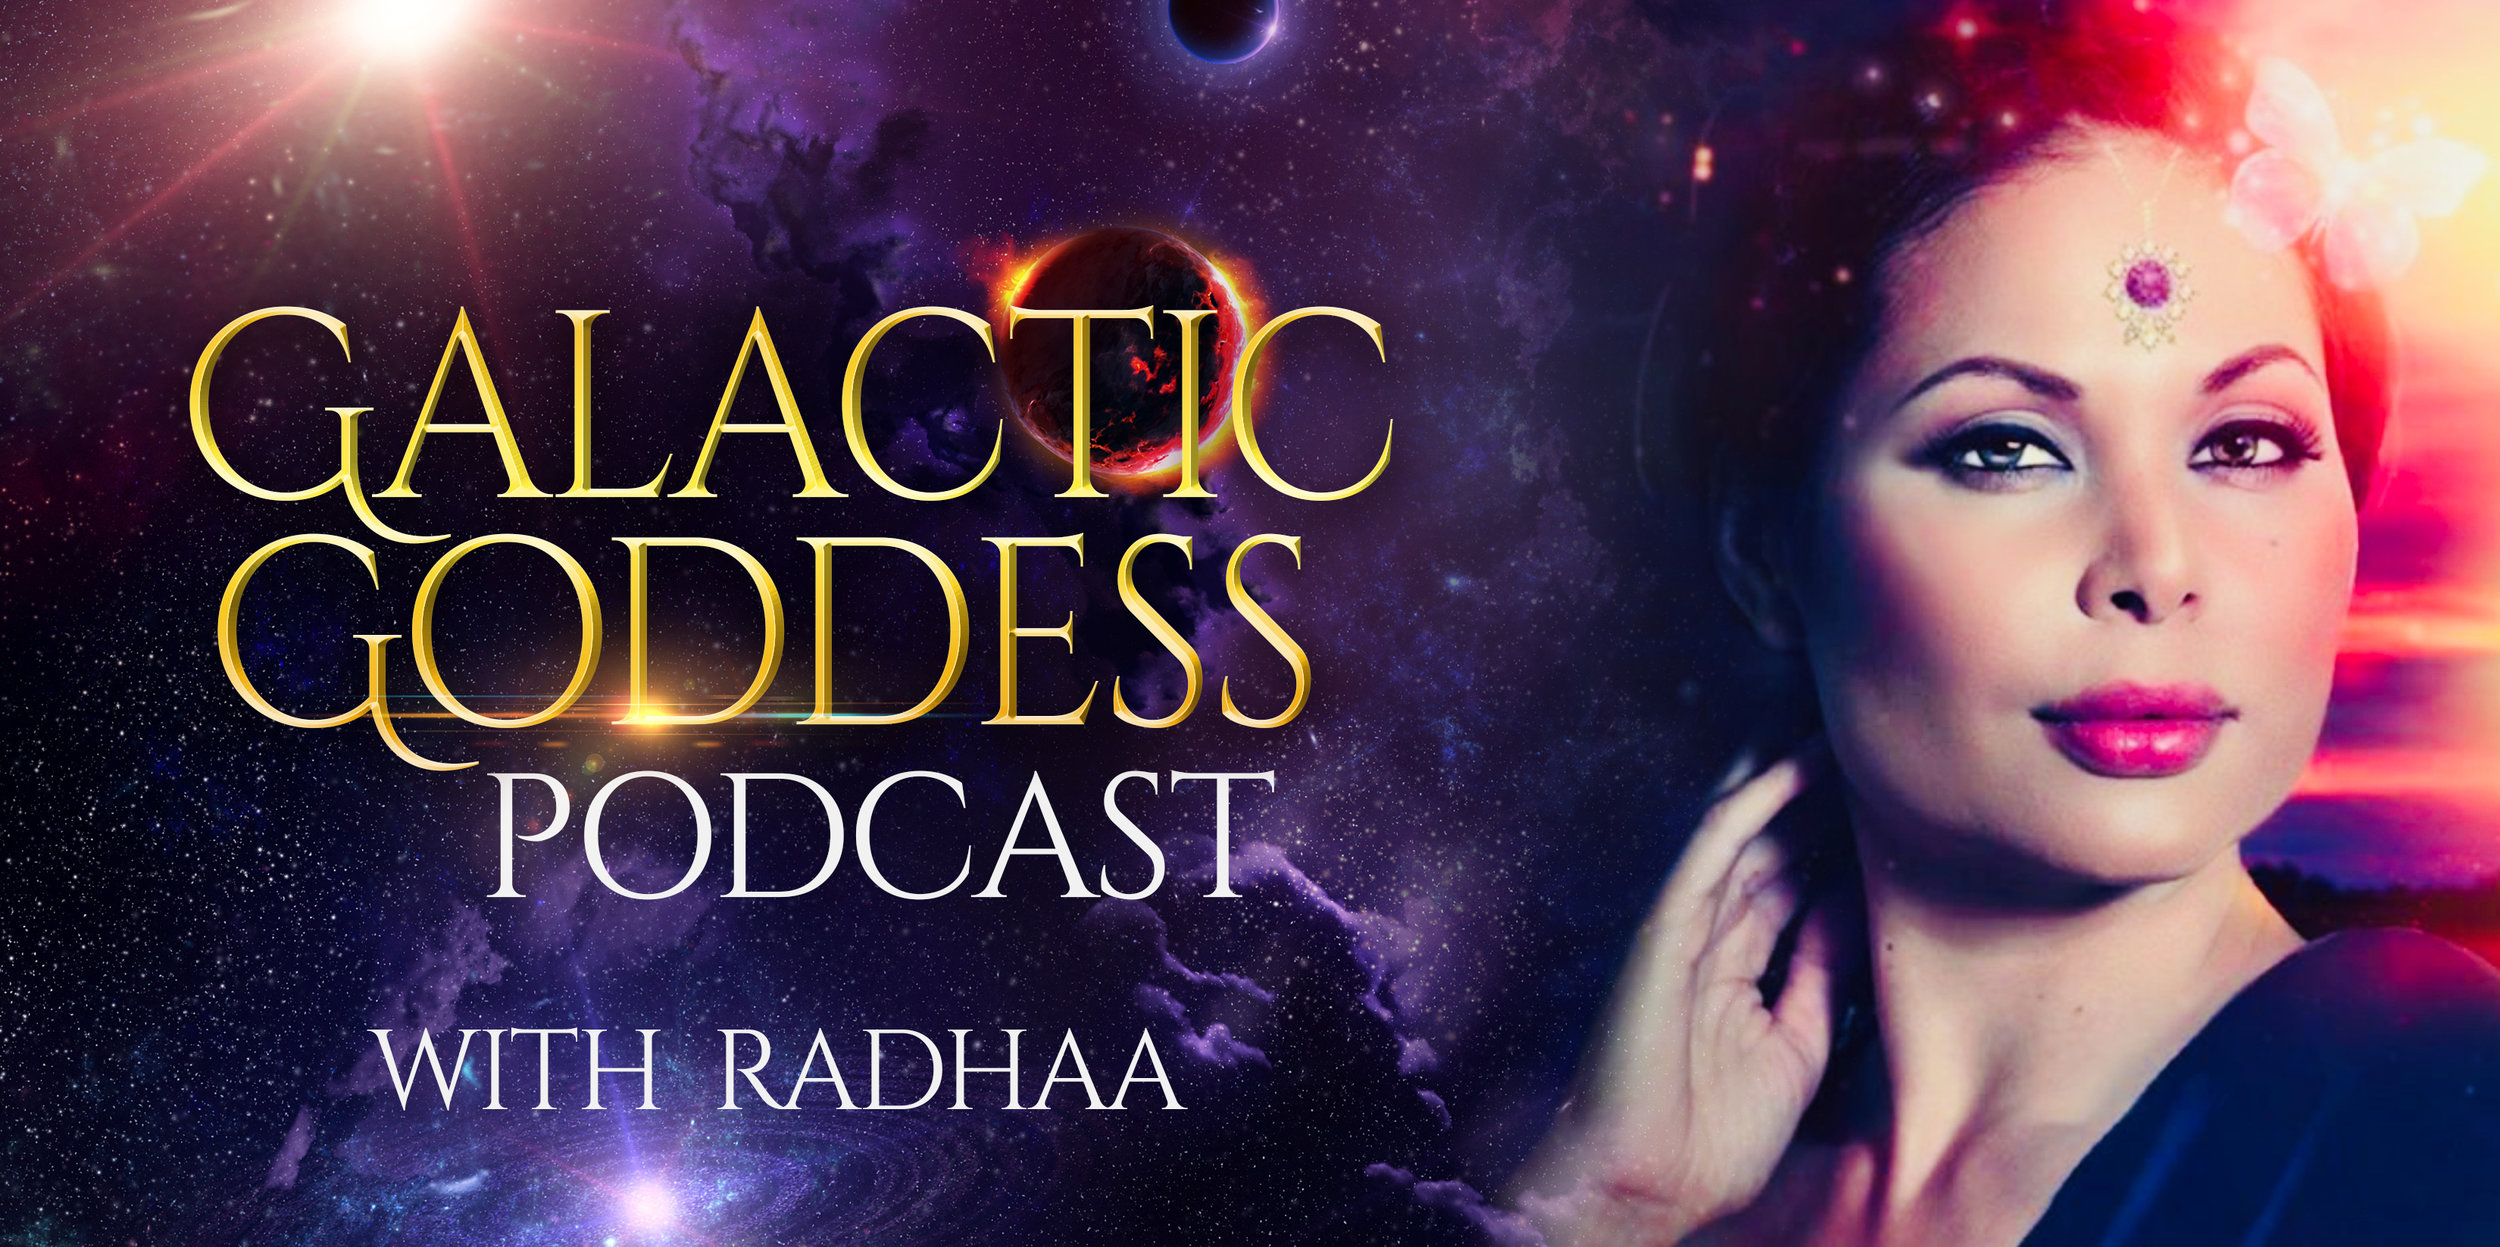 High Rez - Galactic Goddess Podcast - banner.jpg